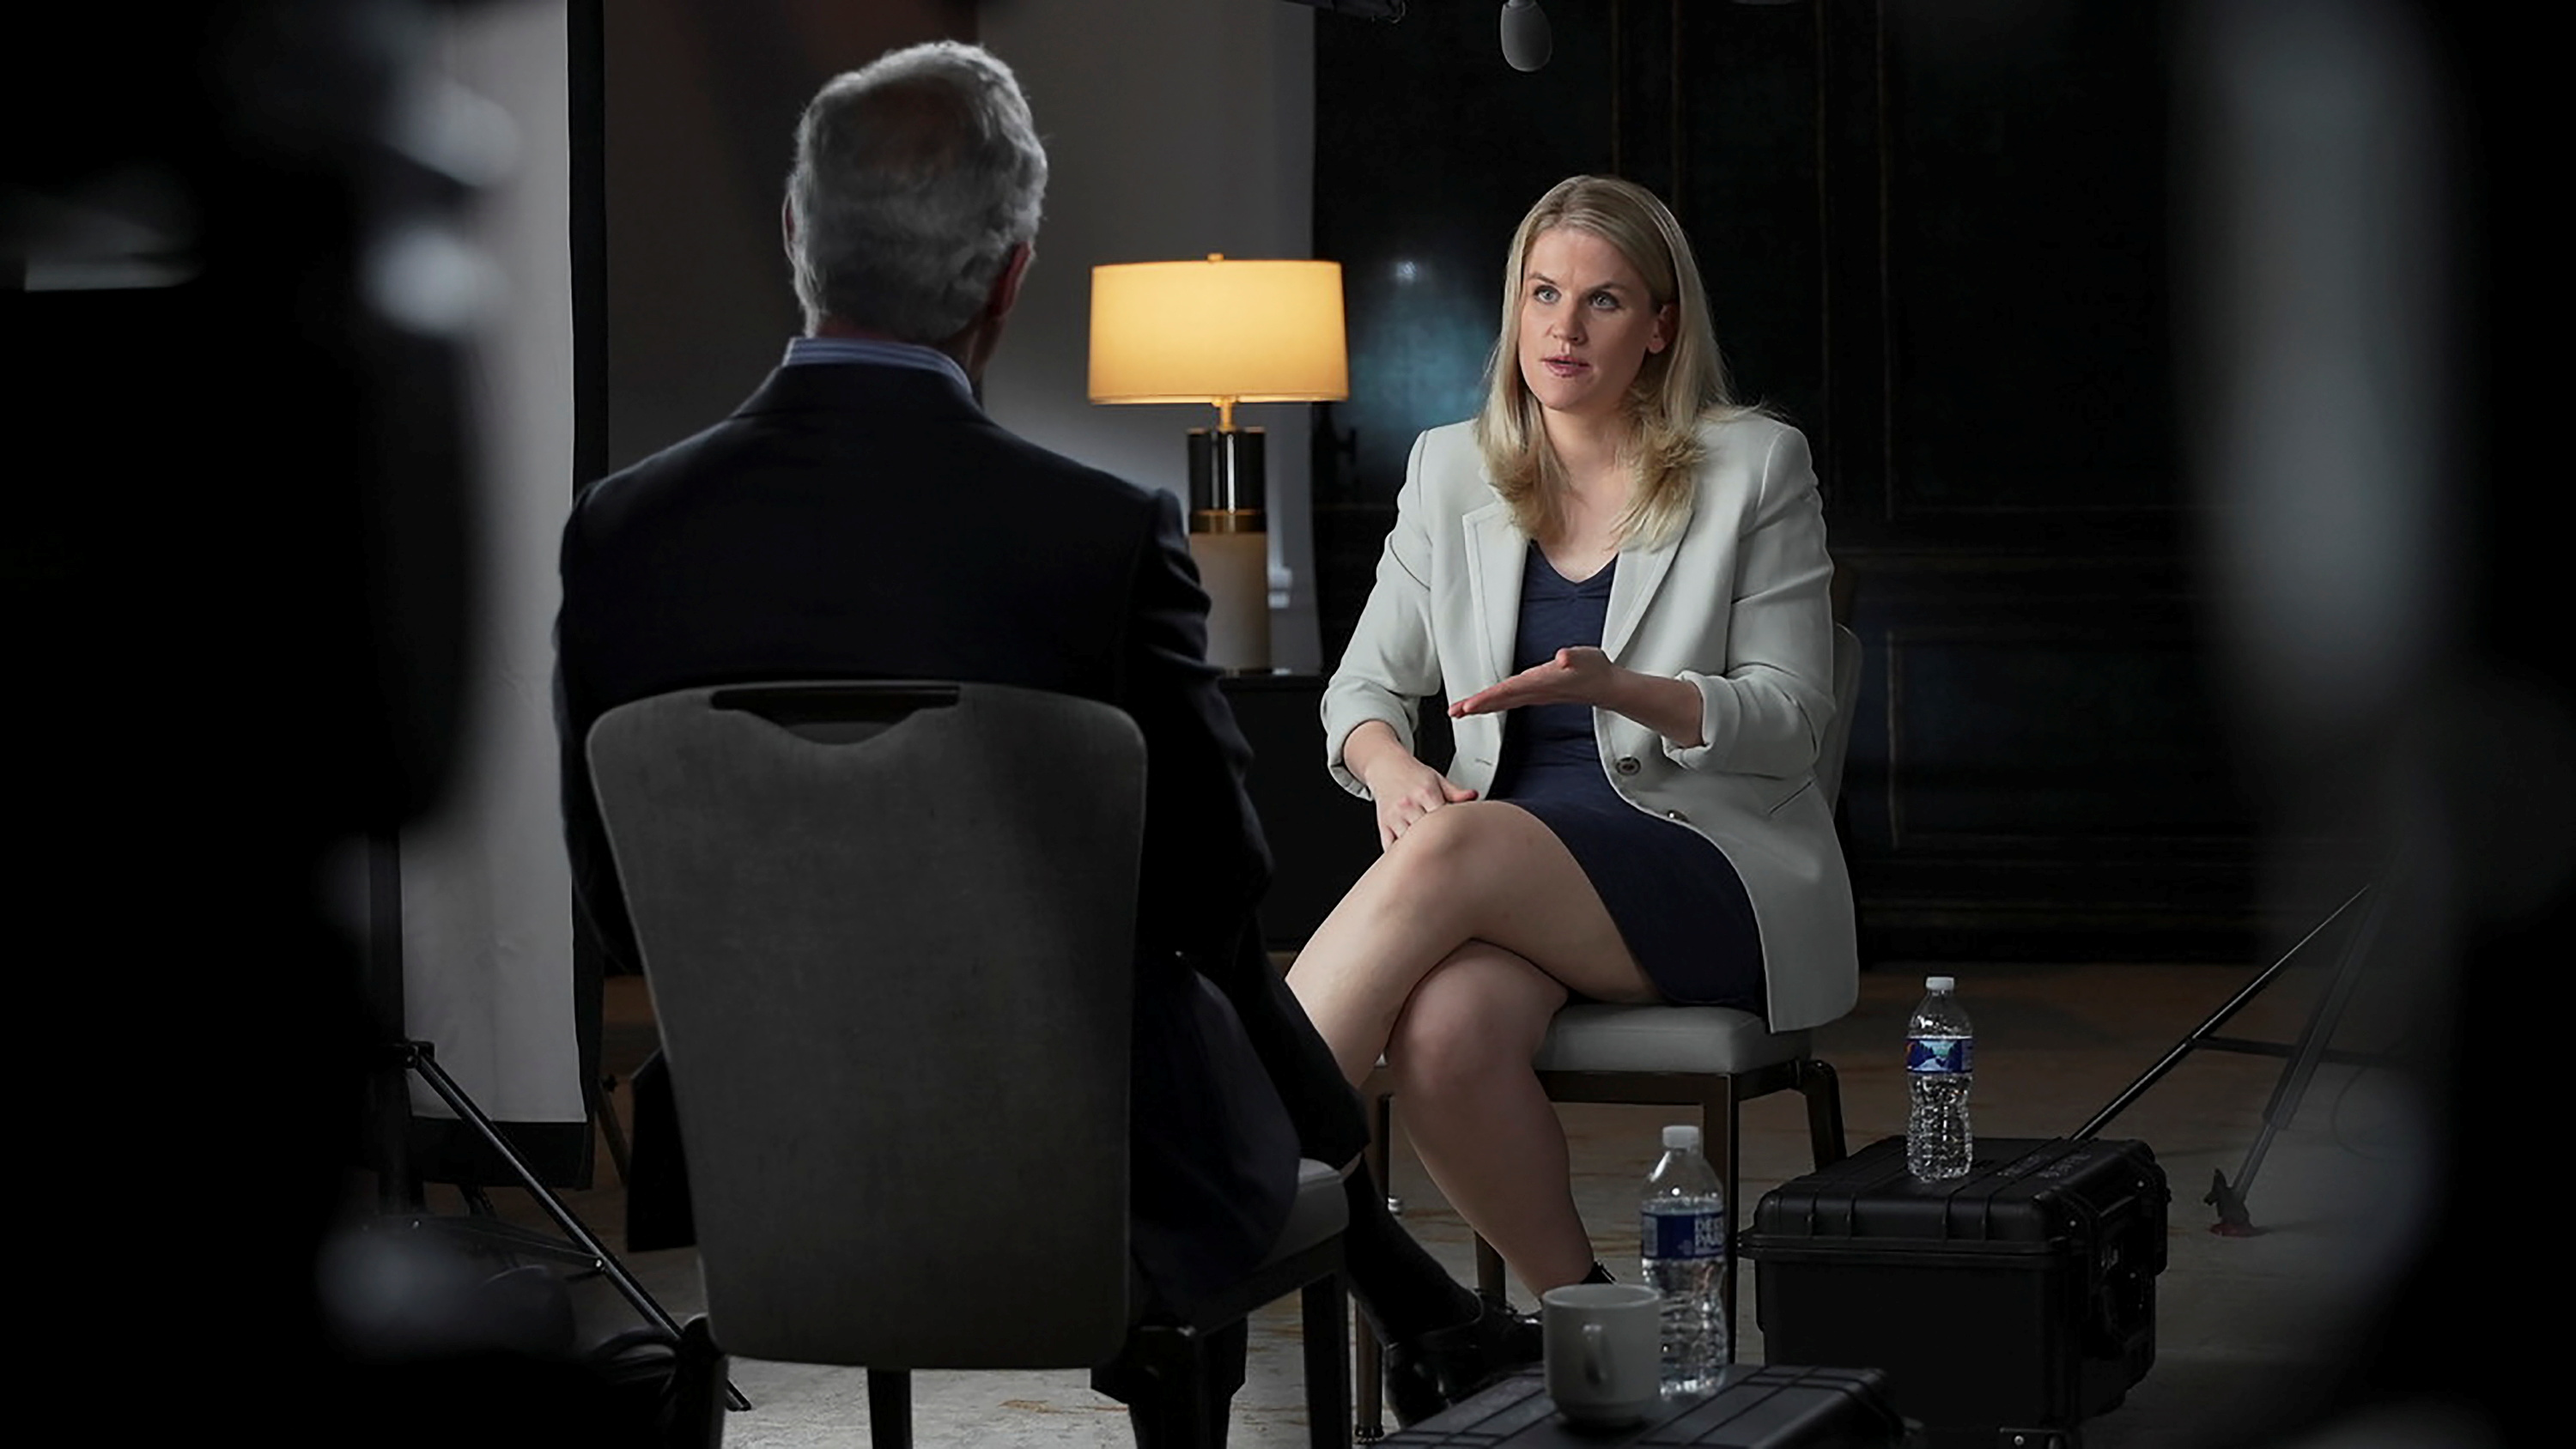 Facebook whistleblower Frances Haugen is interviewed by Scott Pelley for a CBS News 60 Minutes program in an undated photograph.  Robert Fortunato for CBS News/60MINUTES/Handout via REUTERS      NO RESALES. NO ARCHIVES. THIS IMAGE HAS BEEN SUPPLIED BY A THIRD PARTY.